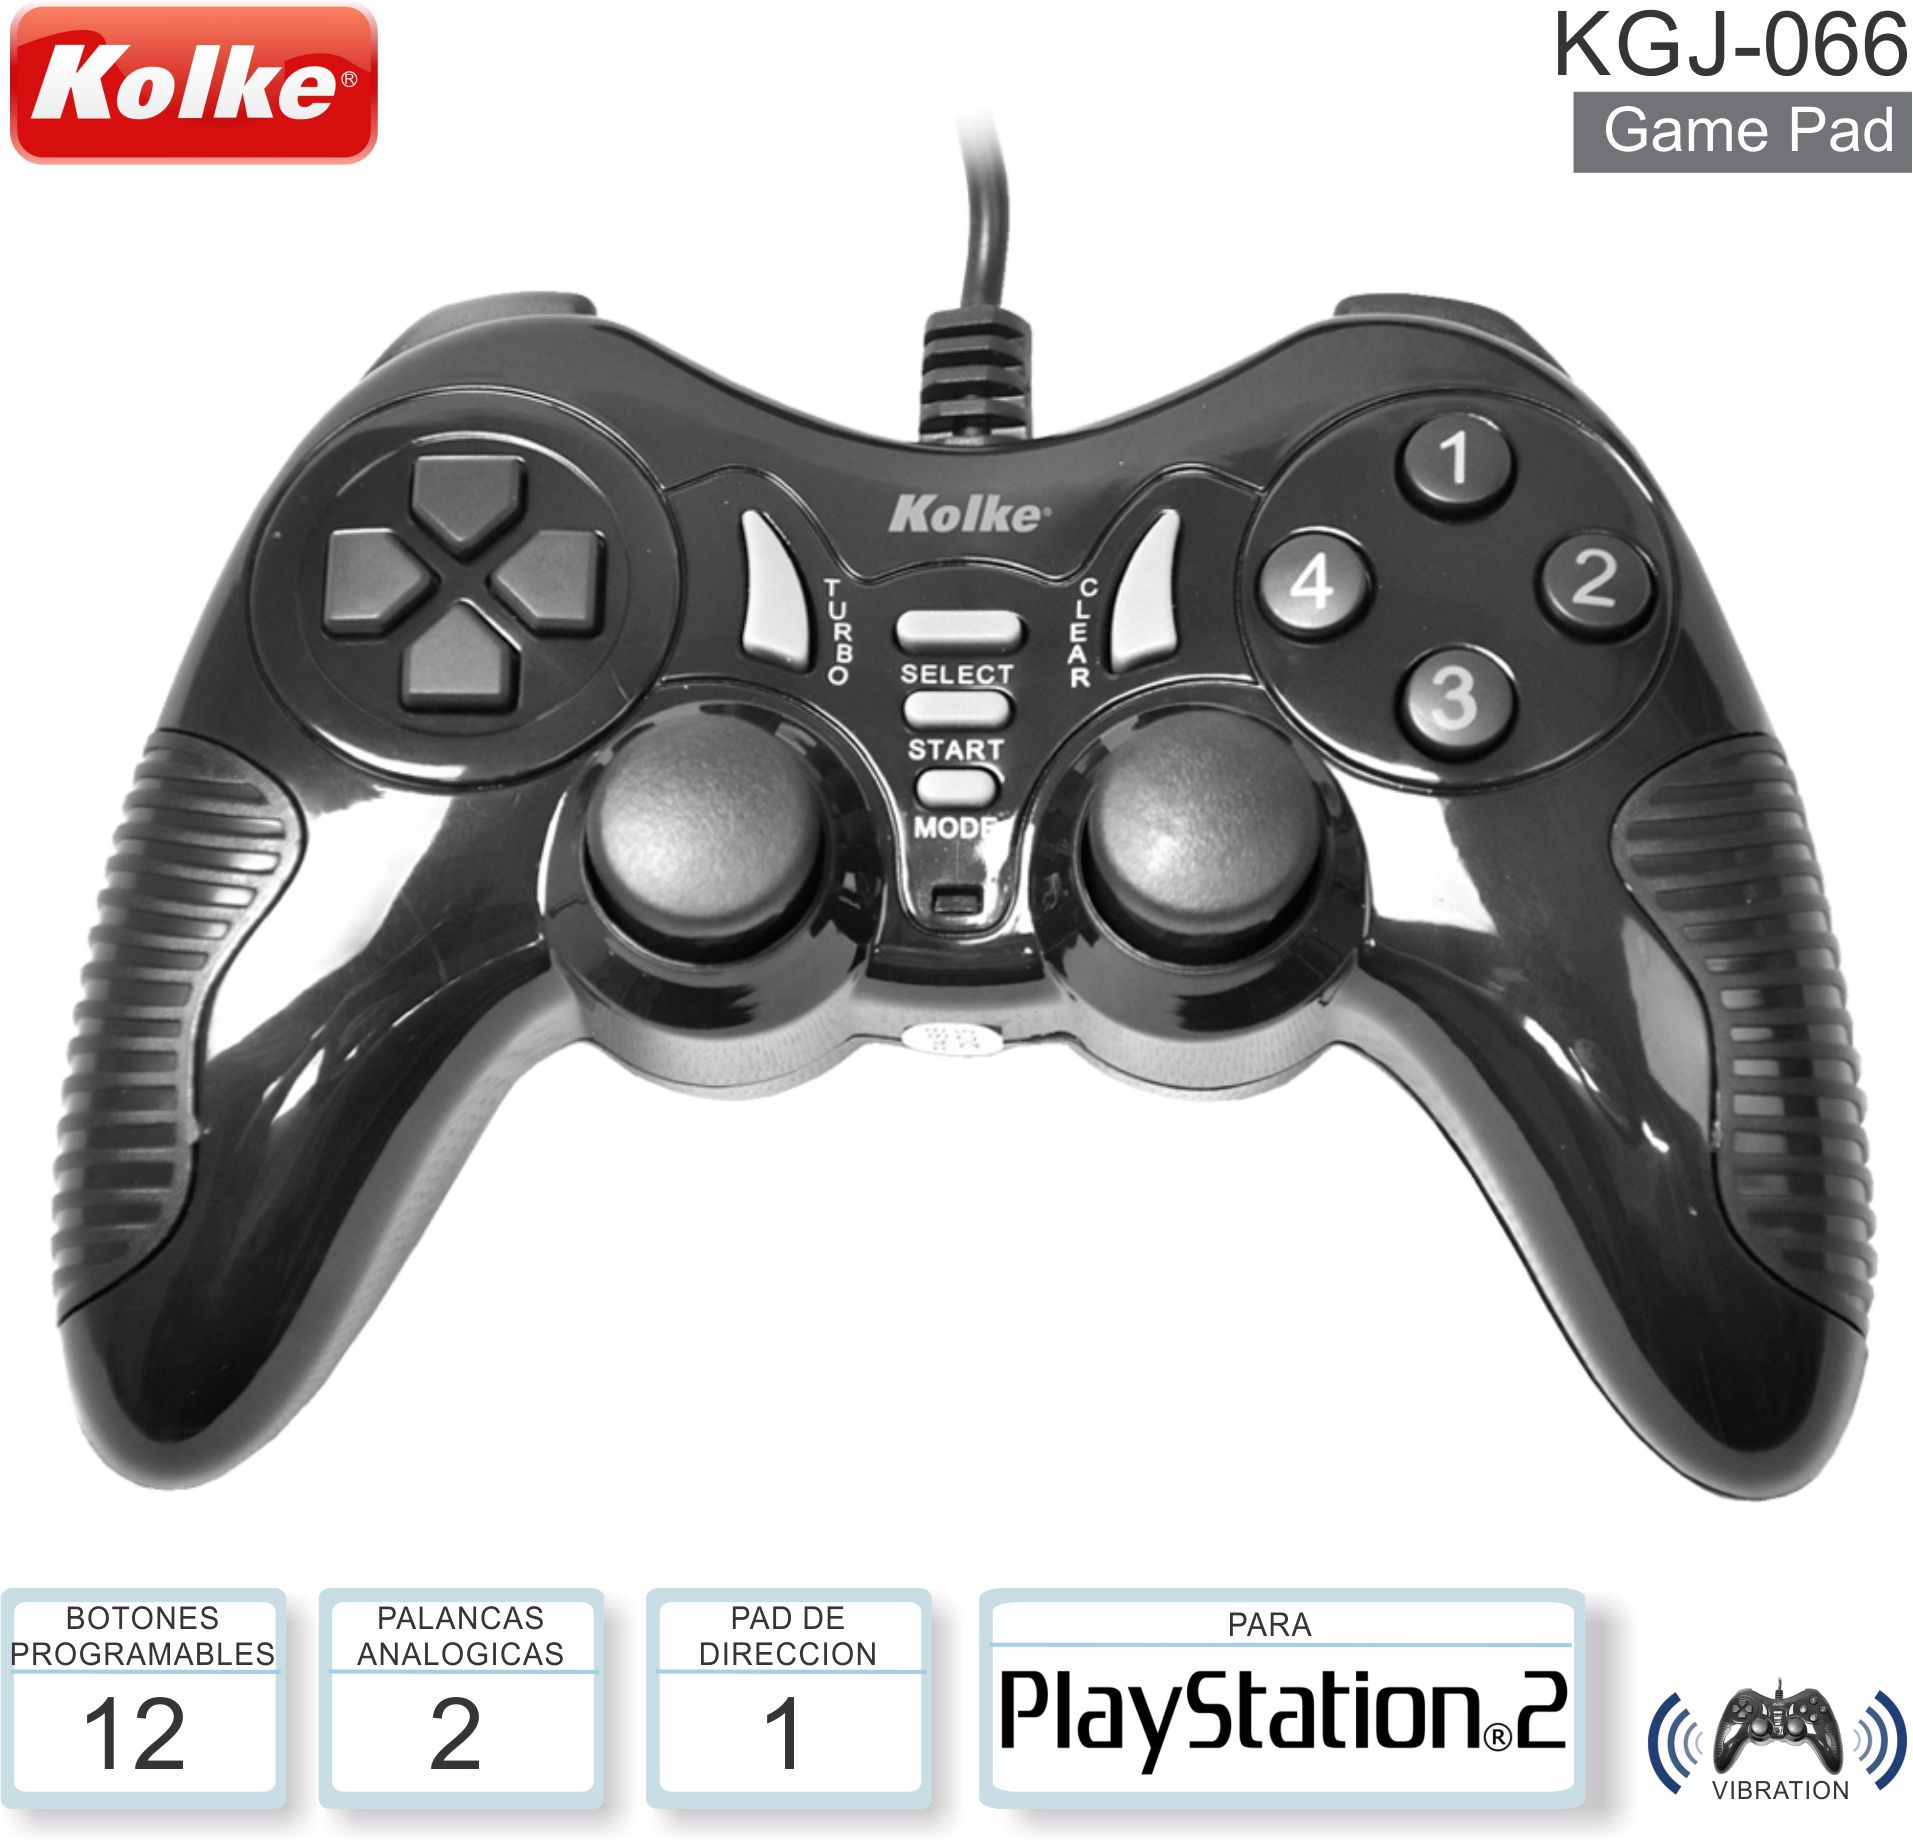 Game Pad KOLKE KGJ-066 PS2